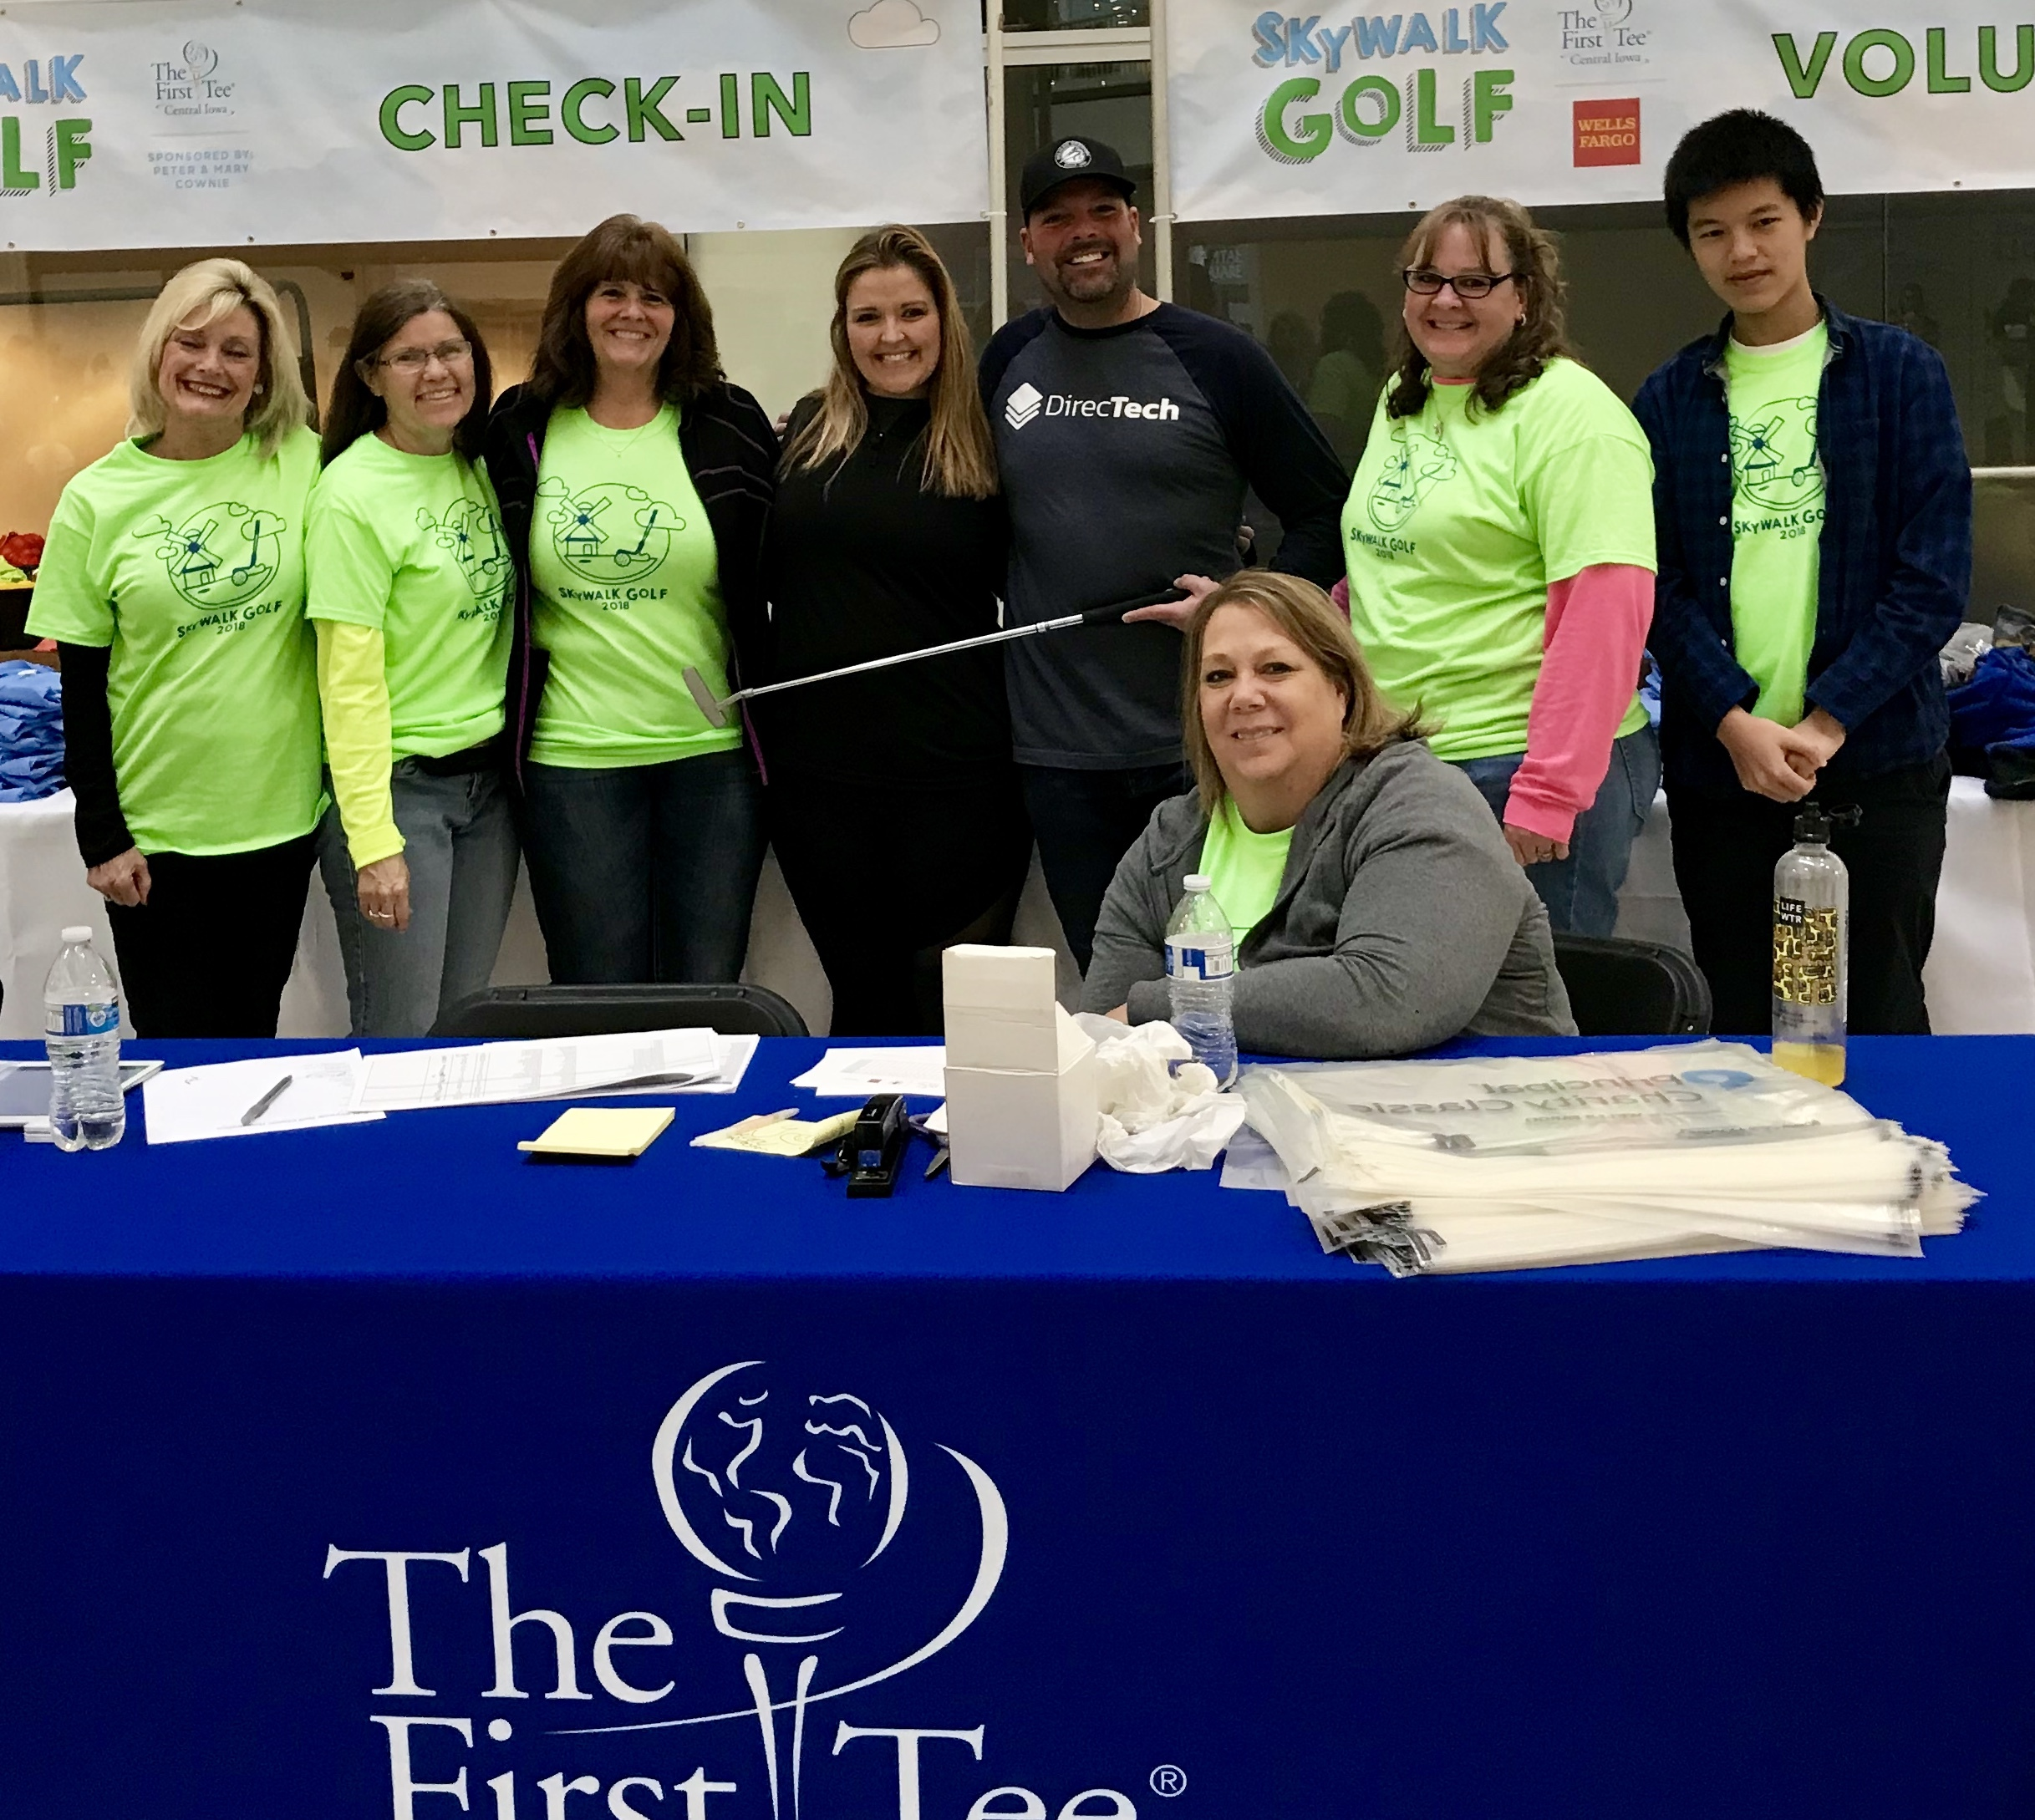 First Tee volunteers and participants, pictured left to right: Darla Jergens, Jan Atchison, Beth Steven, Kari Stone, Dan Tooker, Theresa Nash and Xiangheng Li ; and Sara Robertson, sitting.